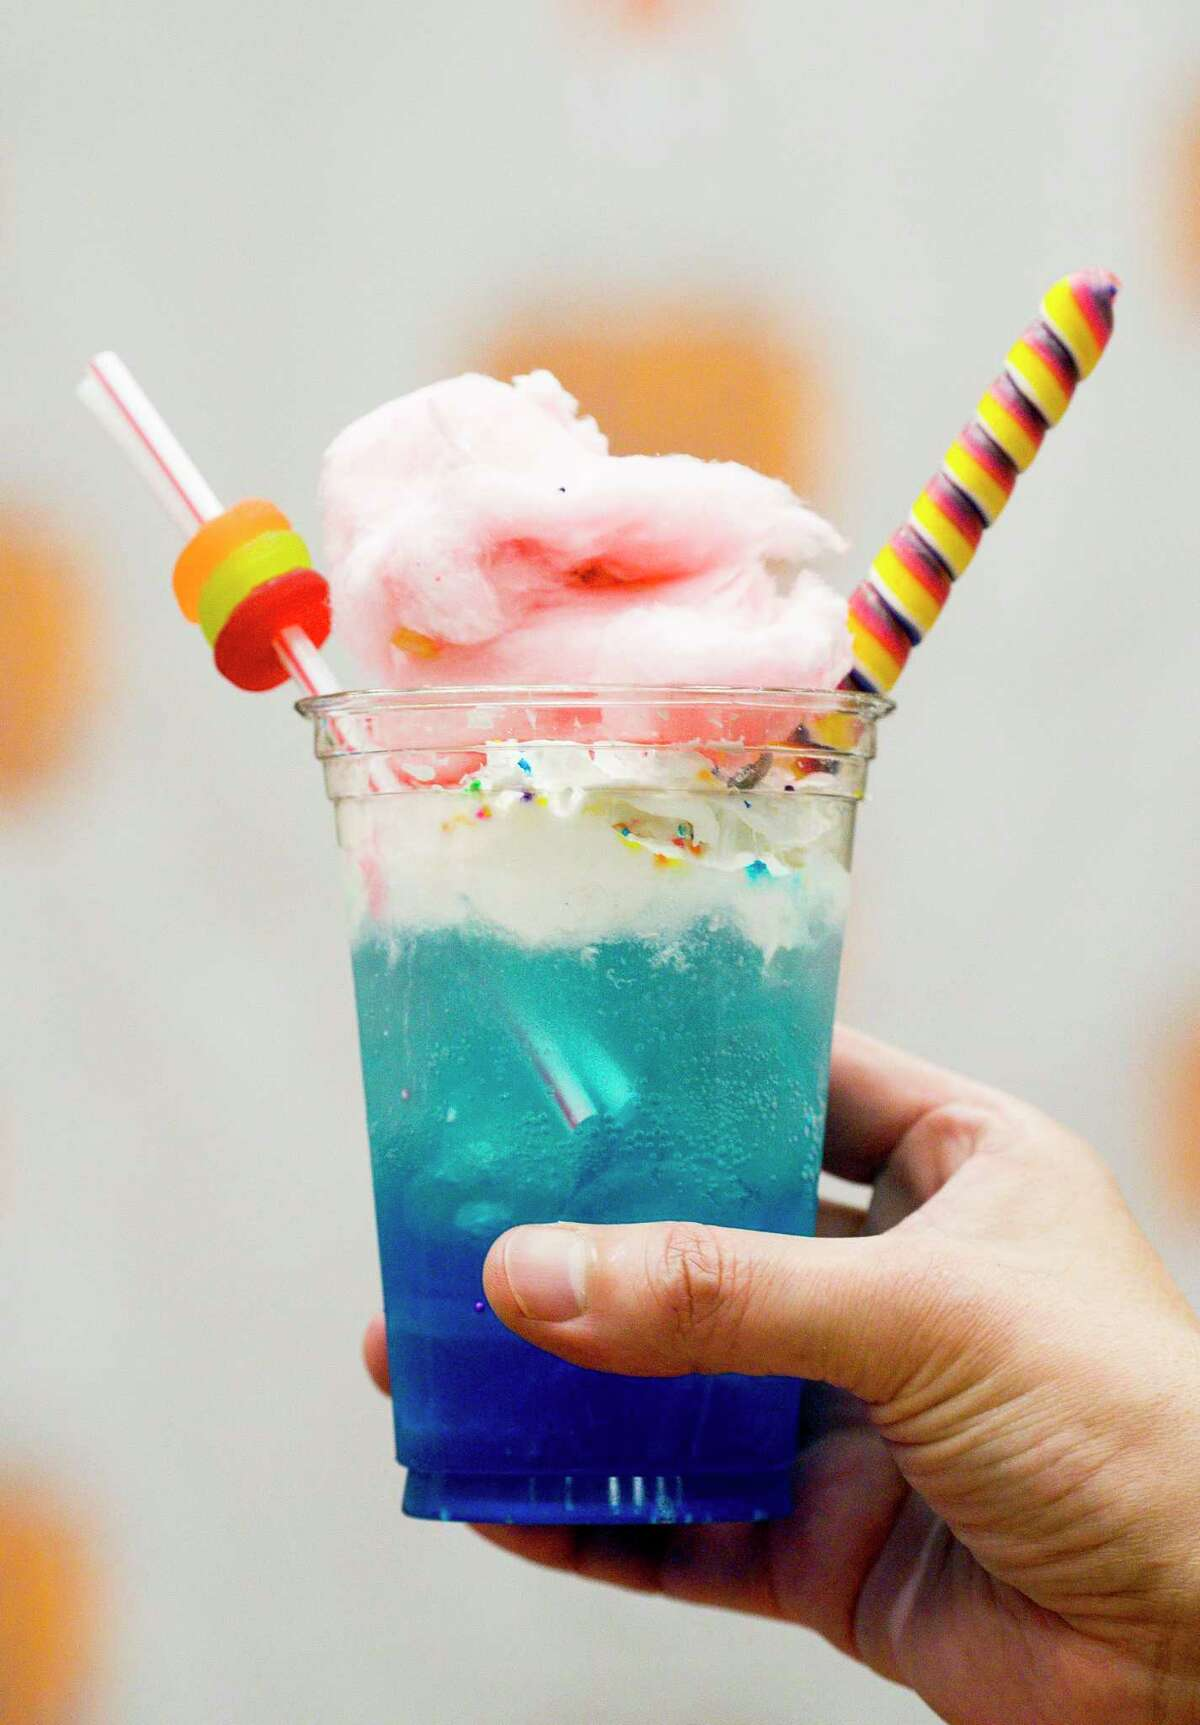 The Unicorn Float from The Candy Factory won first place in the Most Creative Food category of the 2019 Gold Buckle Foodie Awards.